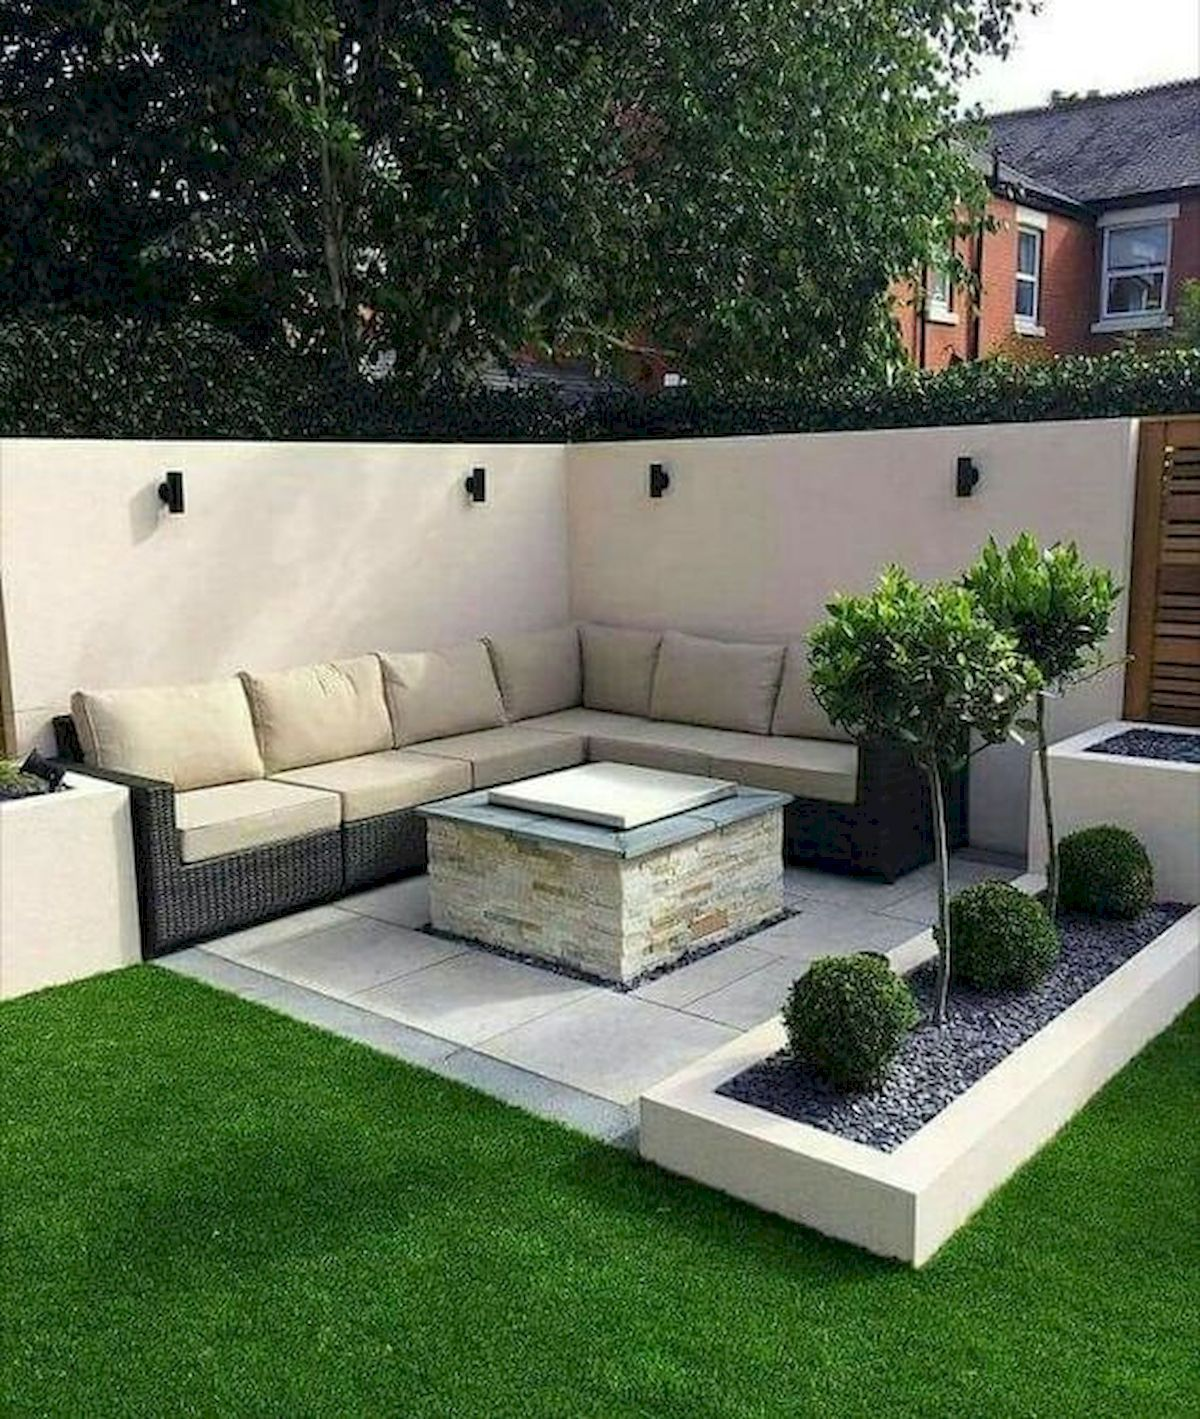 13 garden design House outdoors